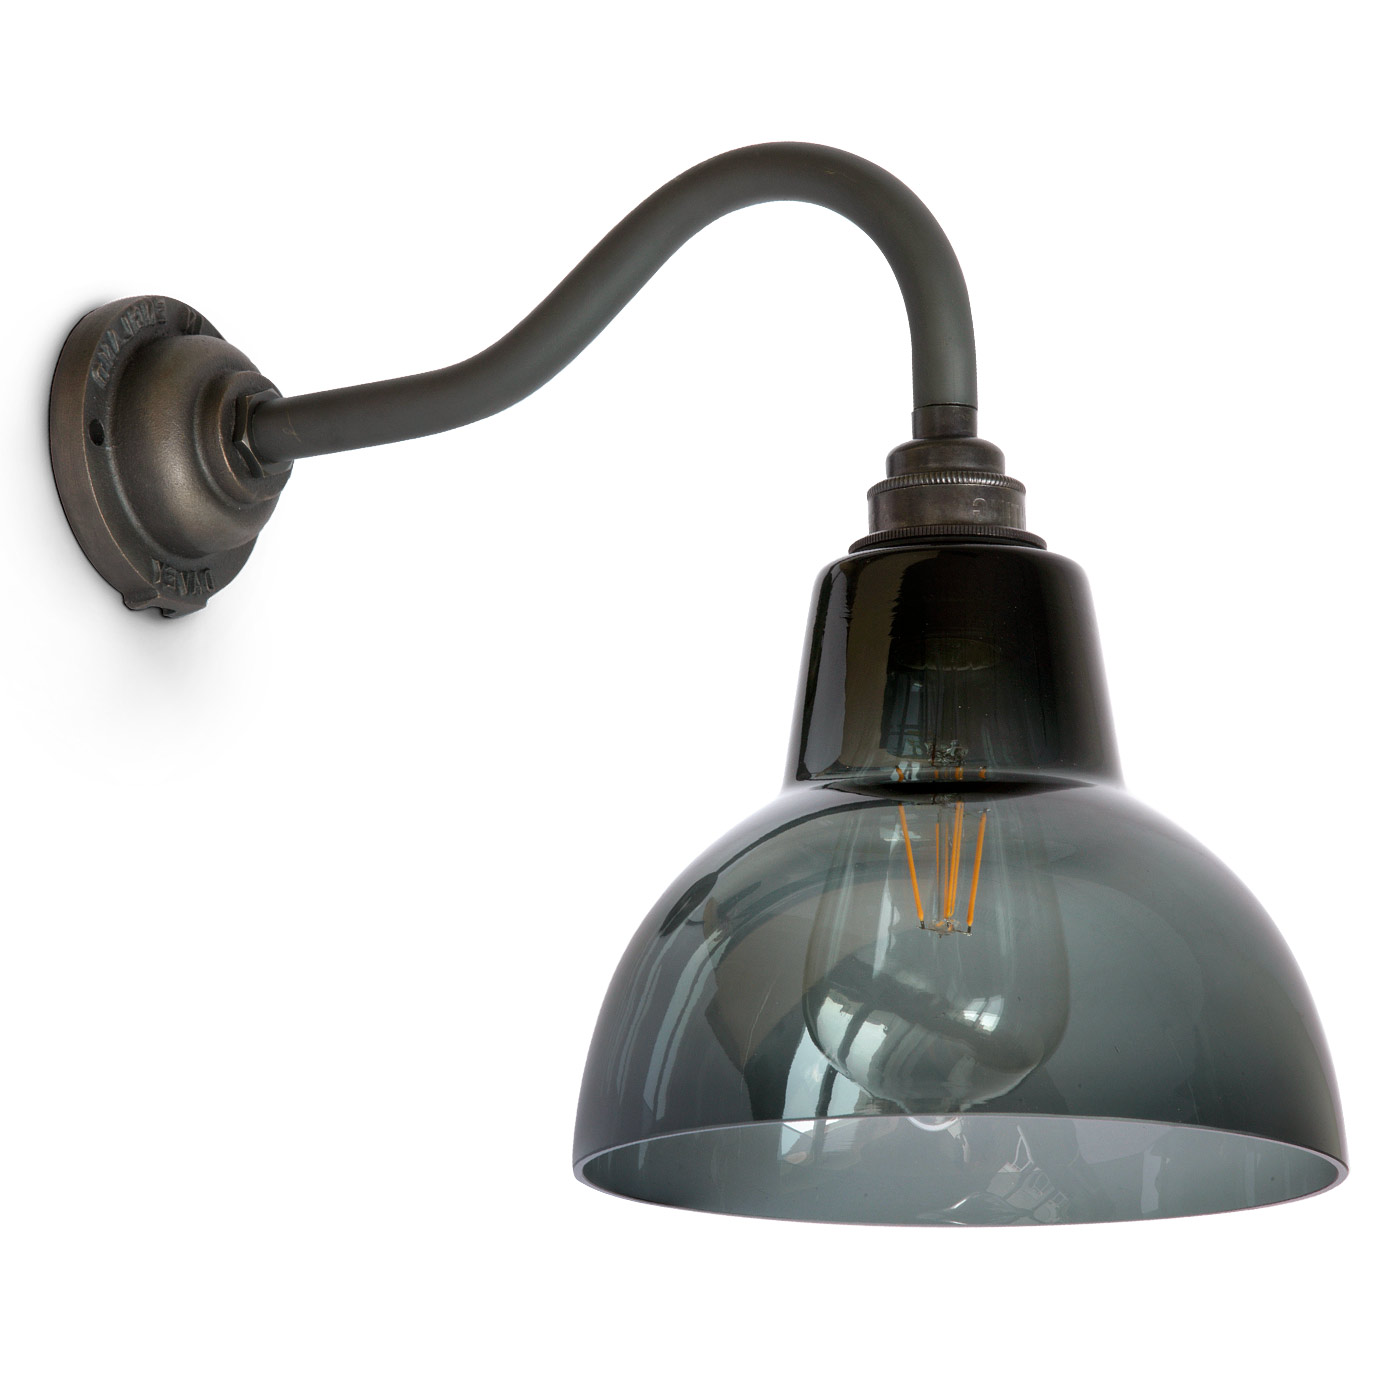 Image 1 york smoked glass wall light with cast industrial style wall arm combined with decorative edison lamp